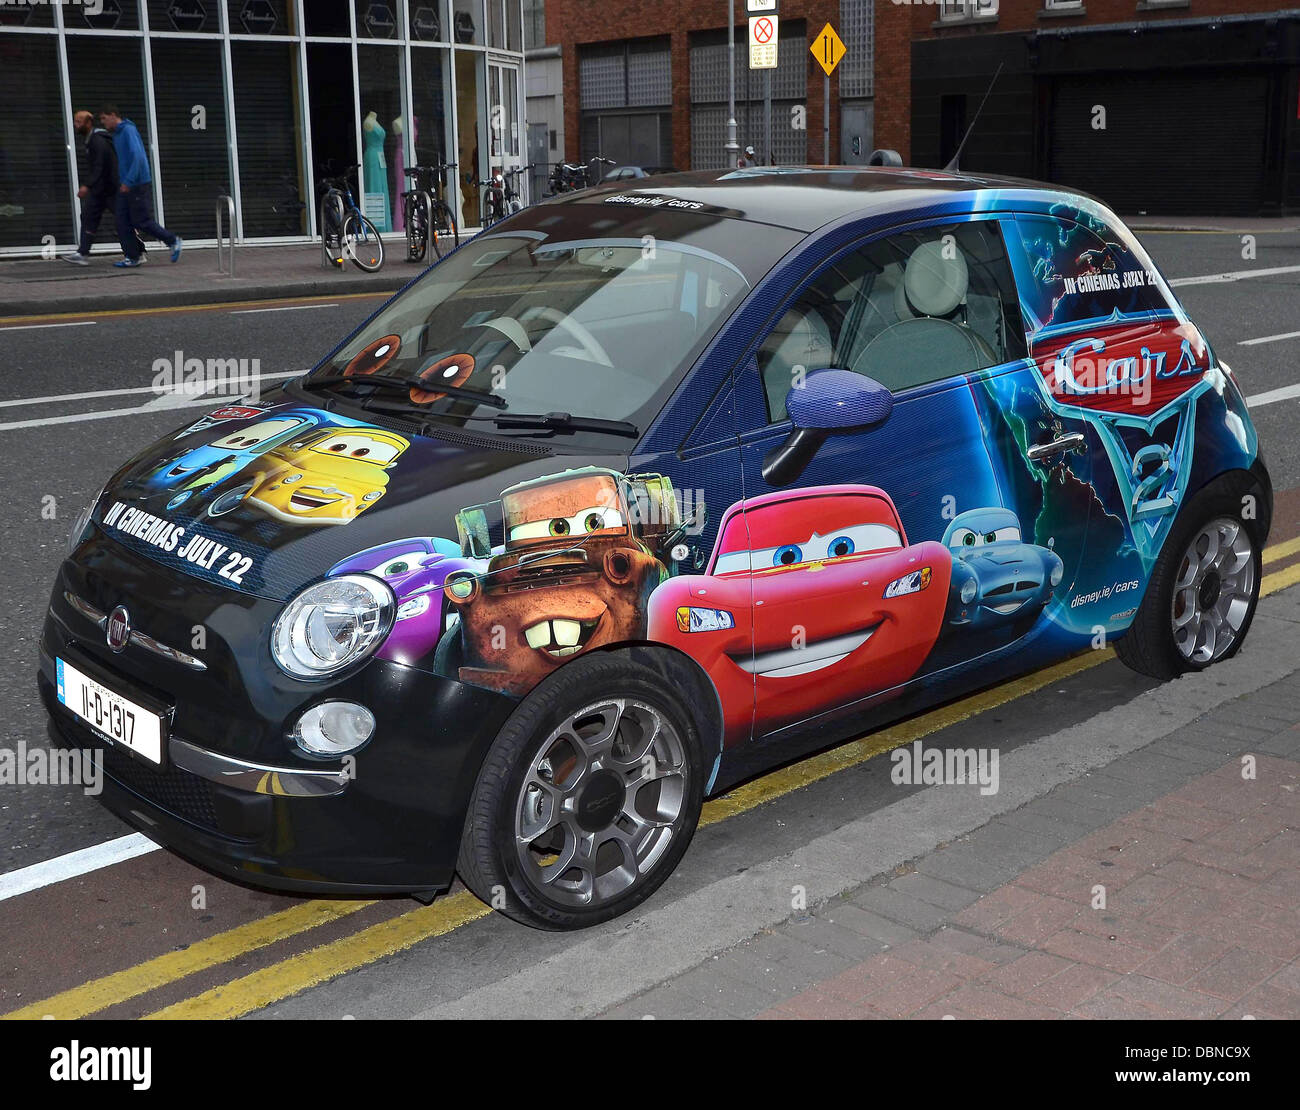 A Fiat 500 Car Painted In Pixar And Walt Disney Cars 2